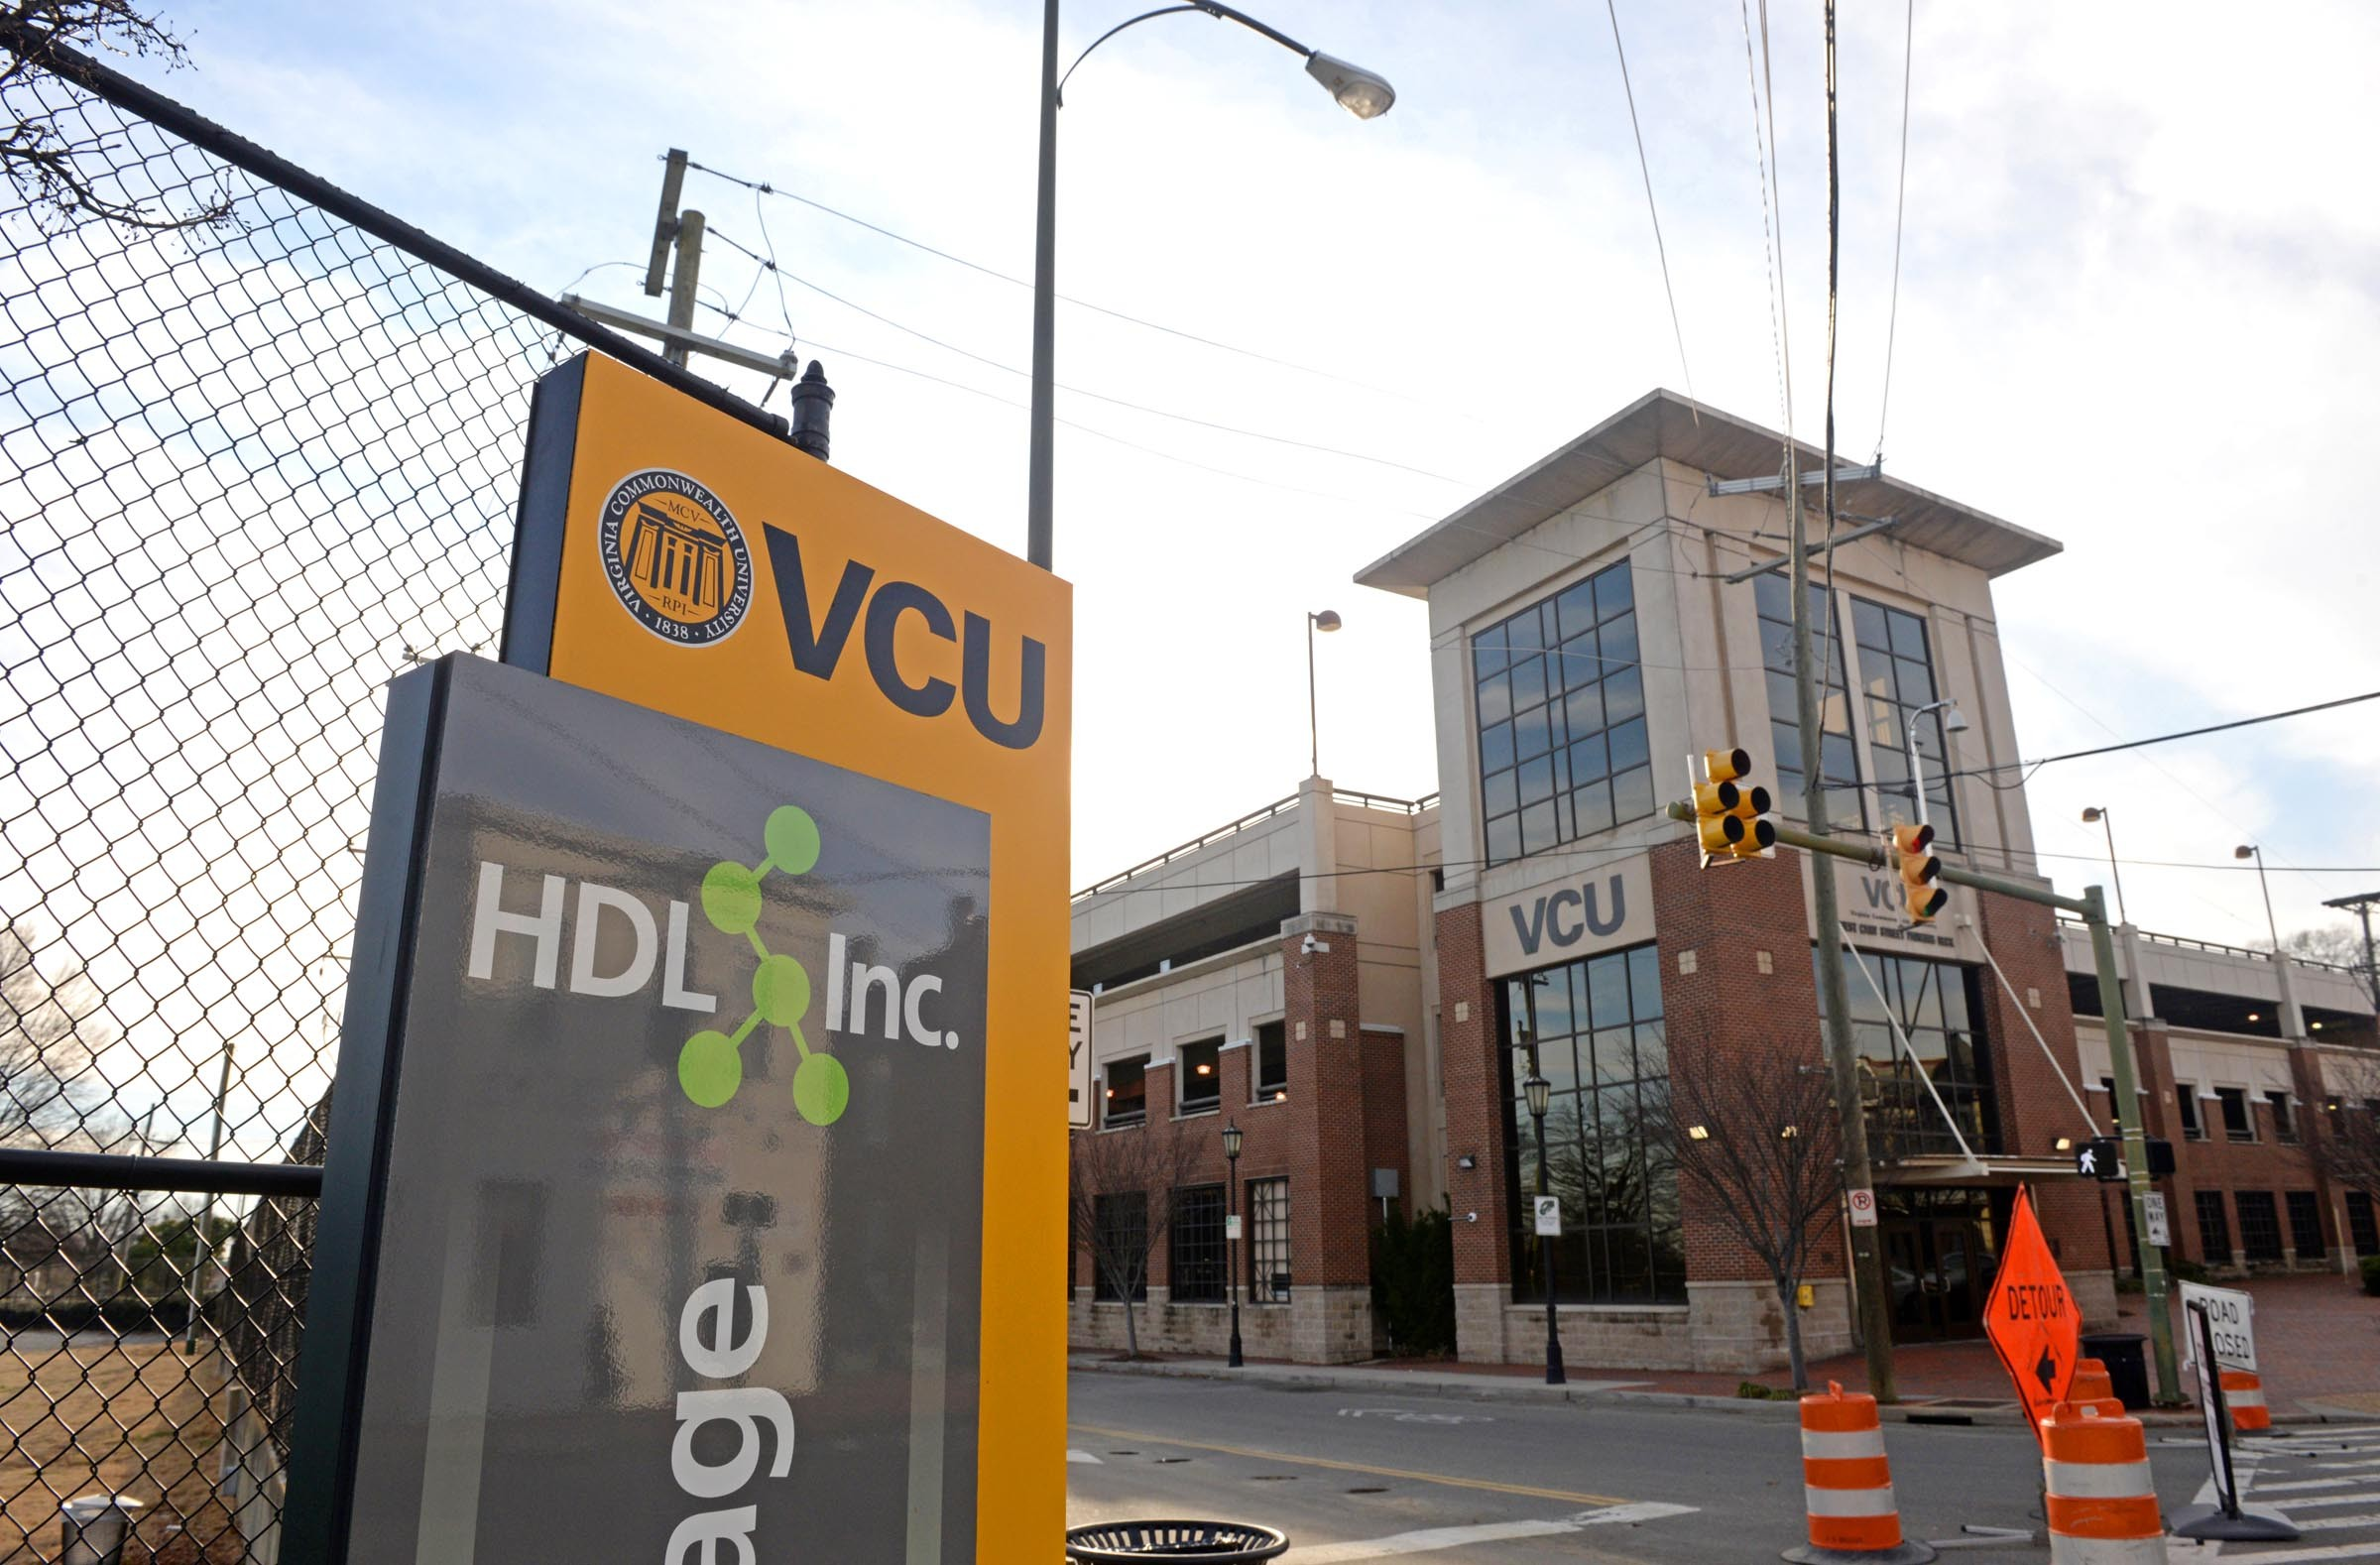 """HDL has close ties with VCU, from which Mallory graduated. Although HDL is adjusting its charitable giving for 2015, a spokesman for VCU told Style in December that """"the company is current on its gift, and we have a good working partnership."""" - SCOTT ELMQUIST"""